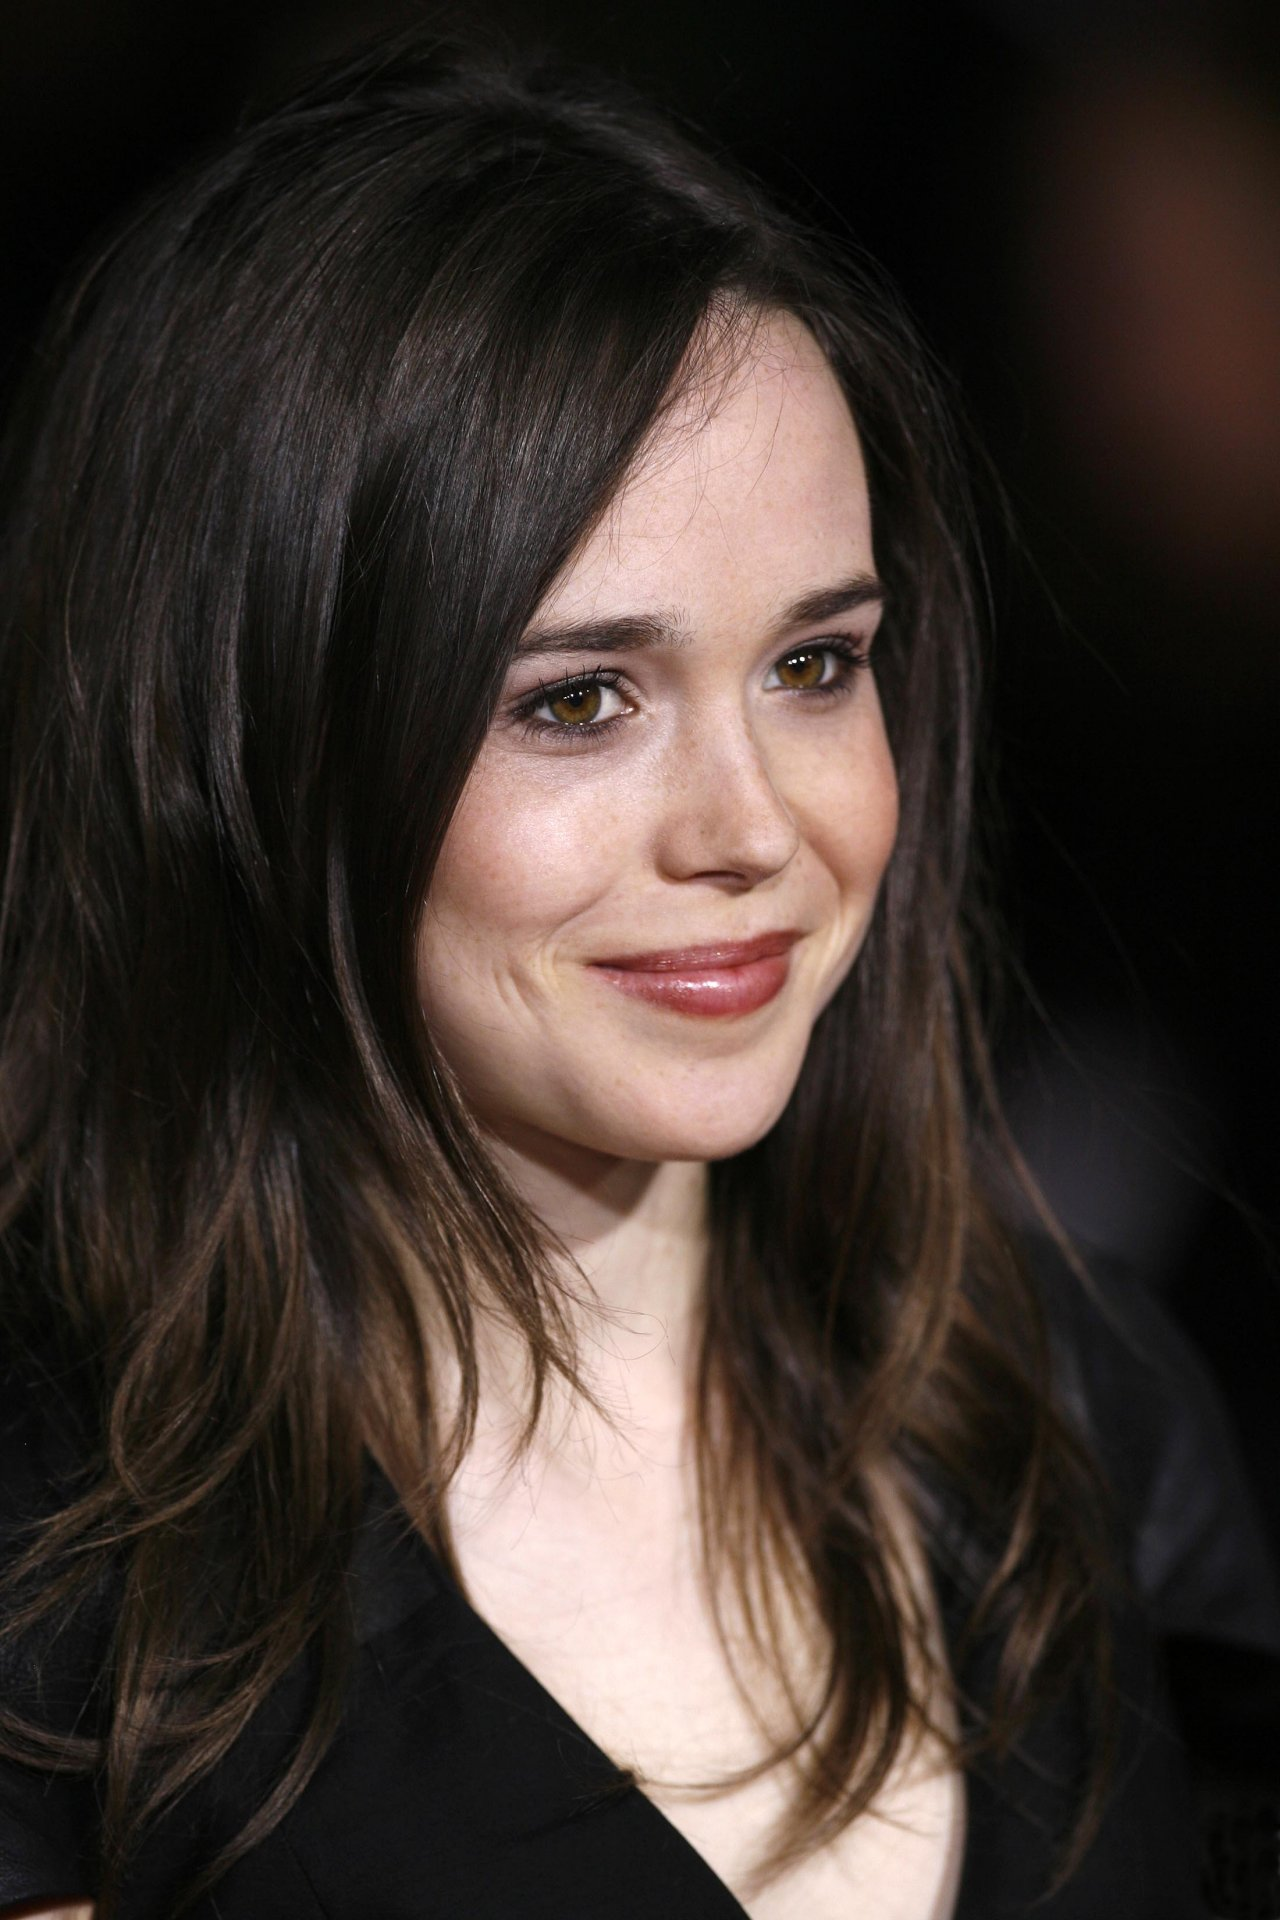 Ellen Page leaked photos (55887). Best celebrity Ellen ... эллен пейдж